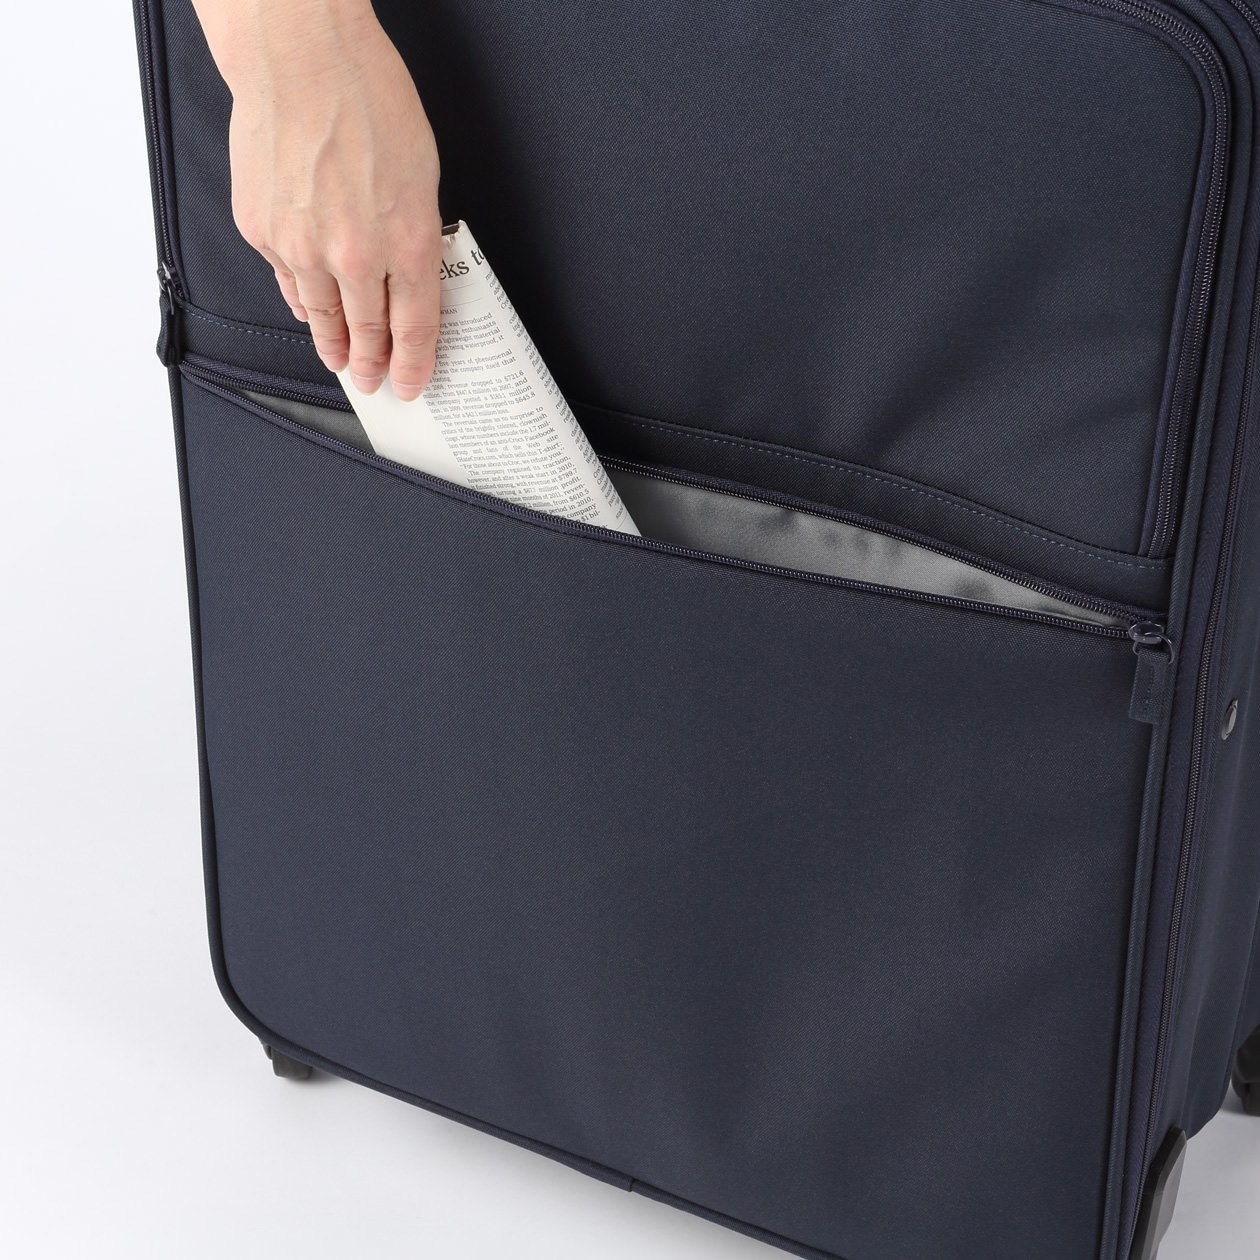 Valise Muji Foldable Soft Carry Suitcase L 無印良品 Muji